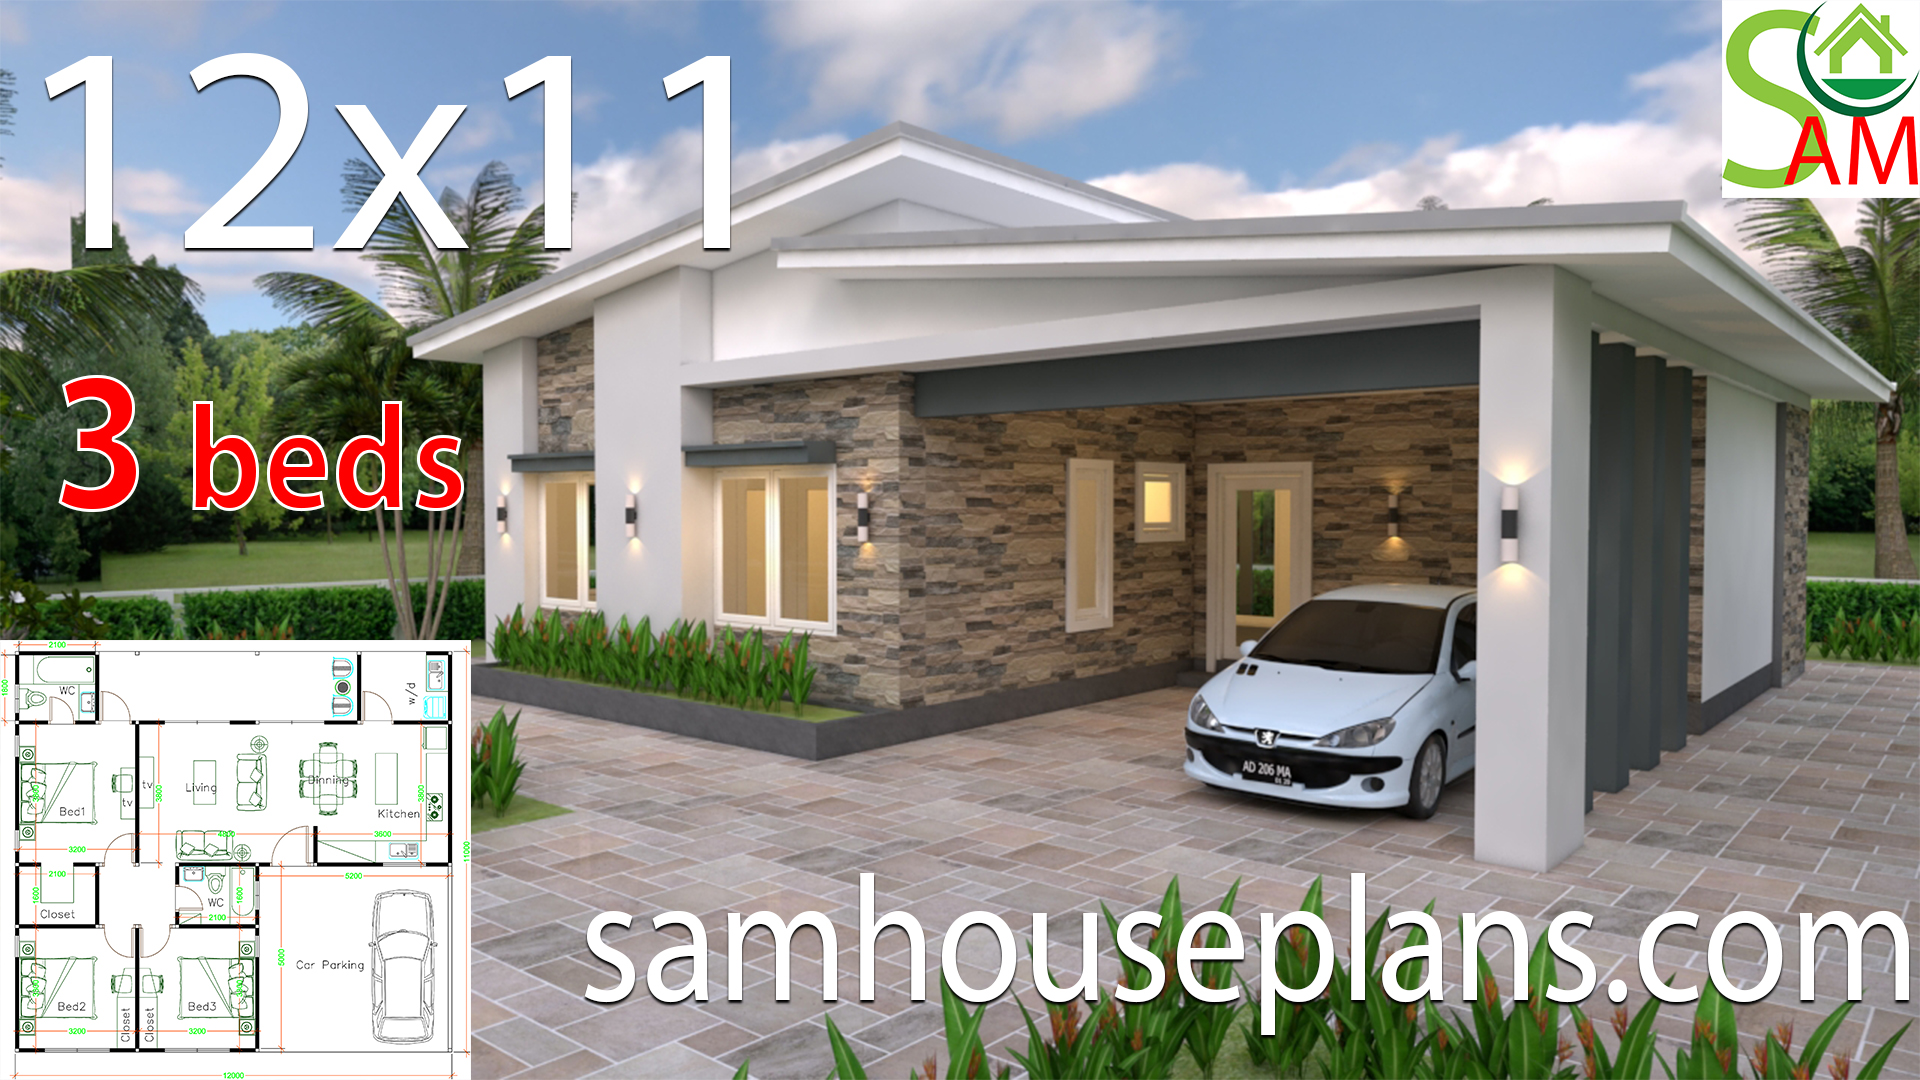 House Plans 12x11 With 3 Bedrooms Shed Roof Samhouseplans